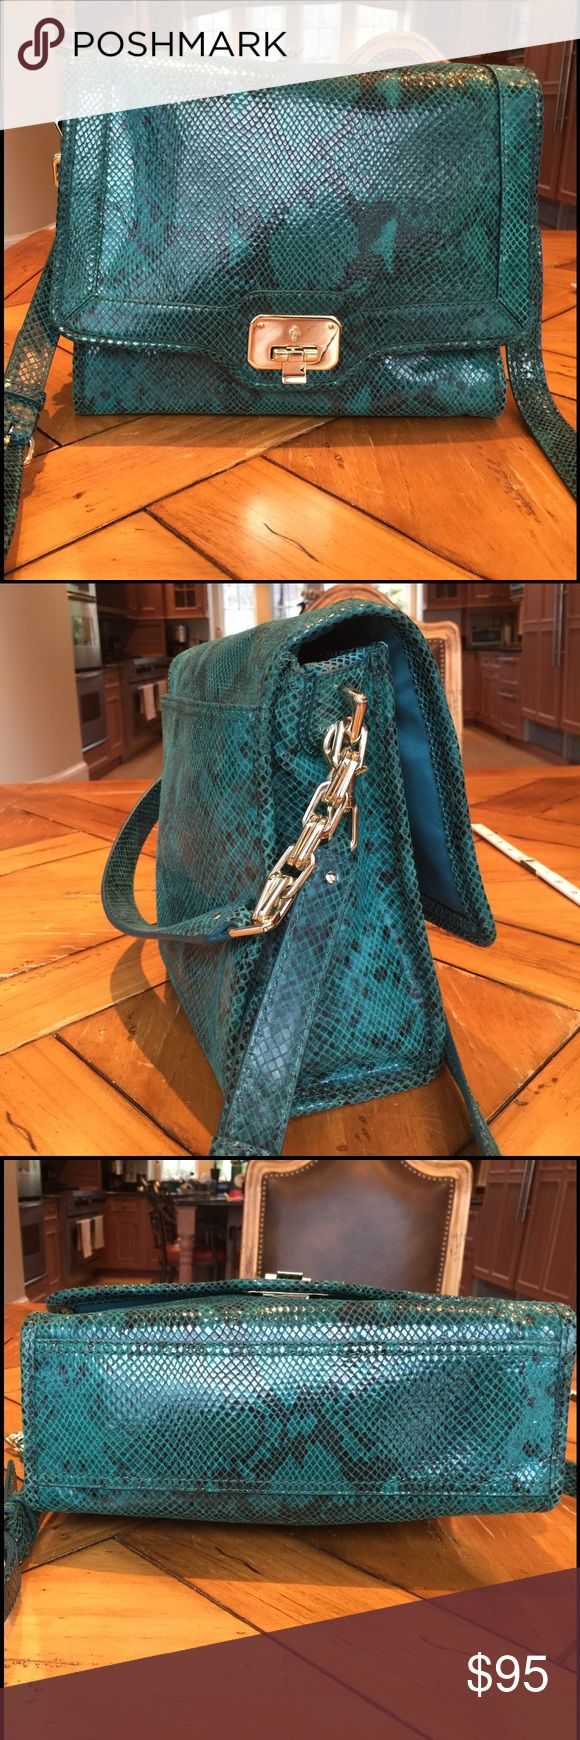 Cole Haan purse! Cole Haan python print teal green leather purse! Like new condition! Use as a shoulder bag or carry on your arm. Plenty of pockets to keep you organized! Cole Haan Bags Shoulder Bags